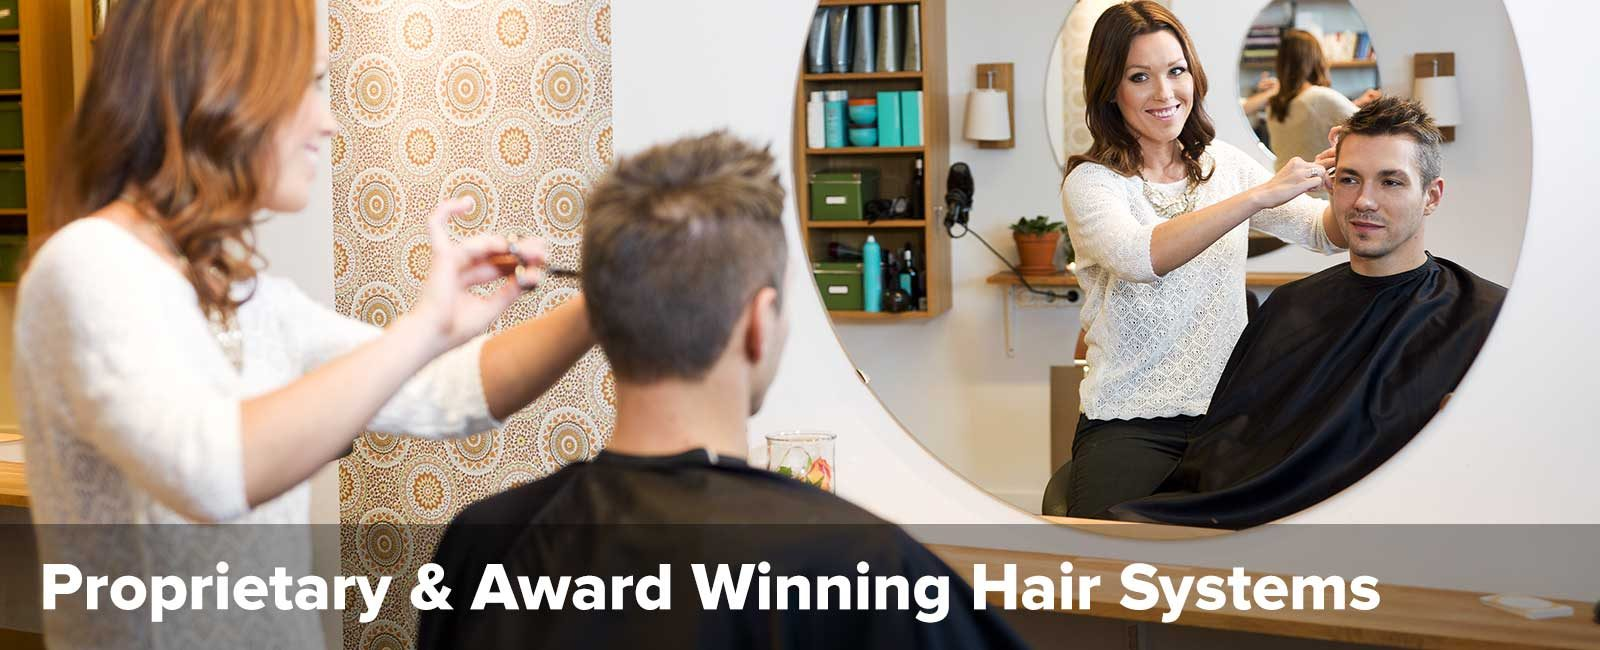 Award Winning Hair Systems